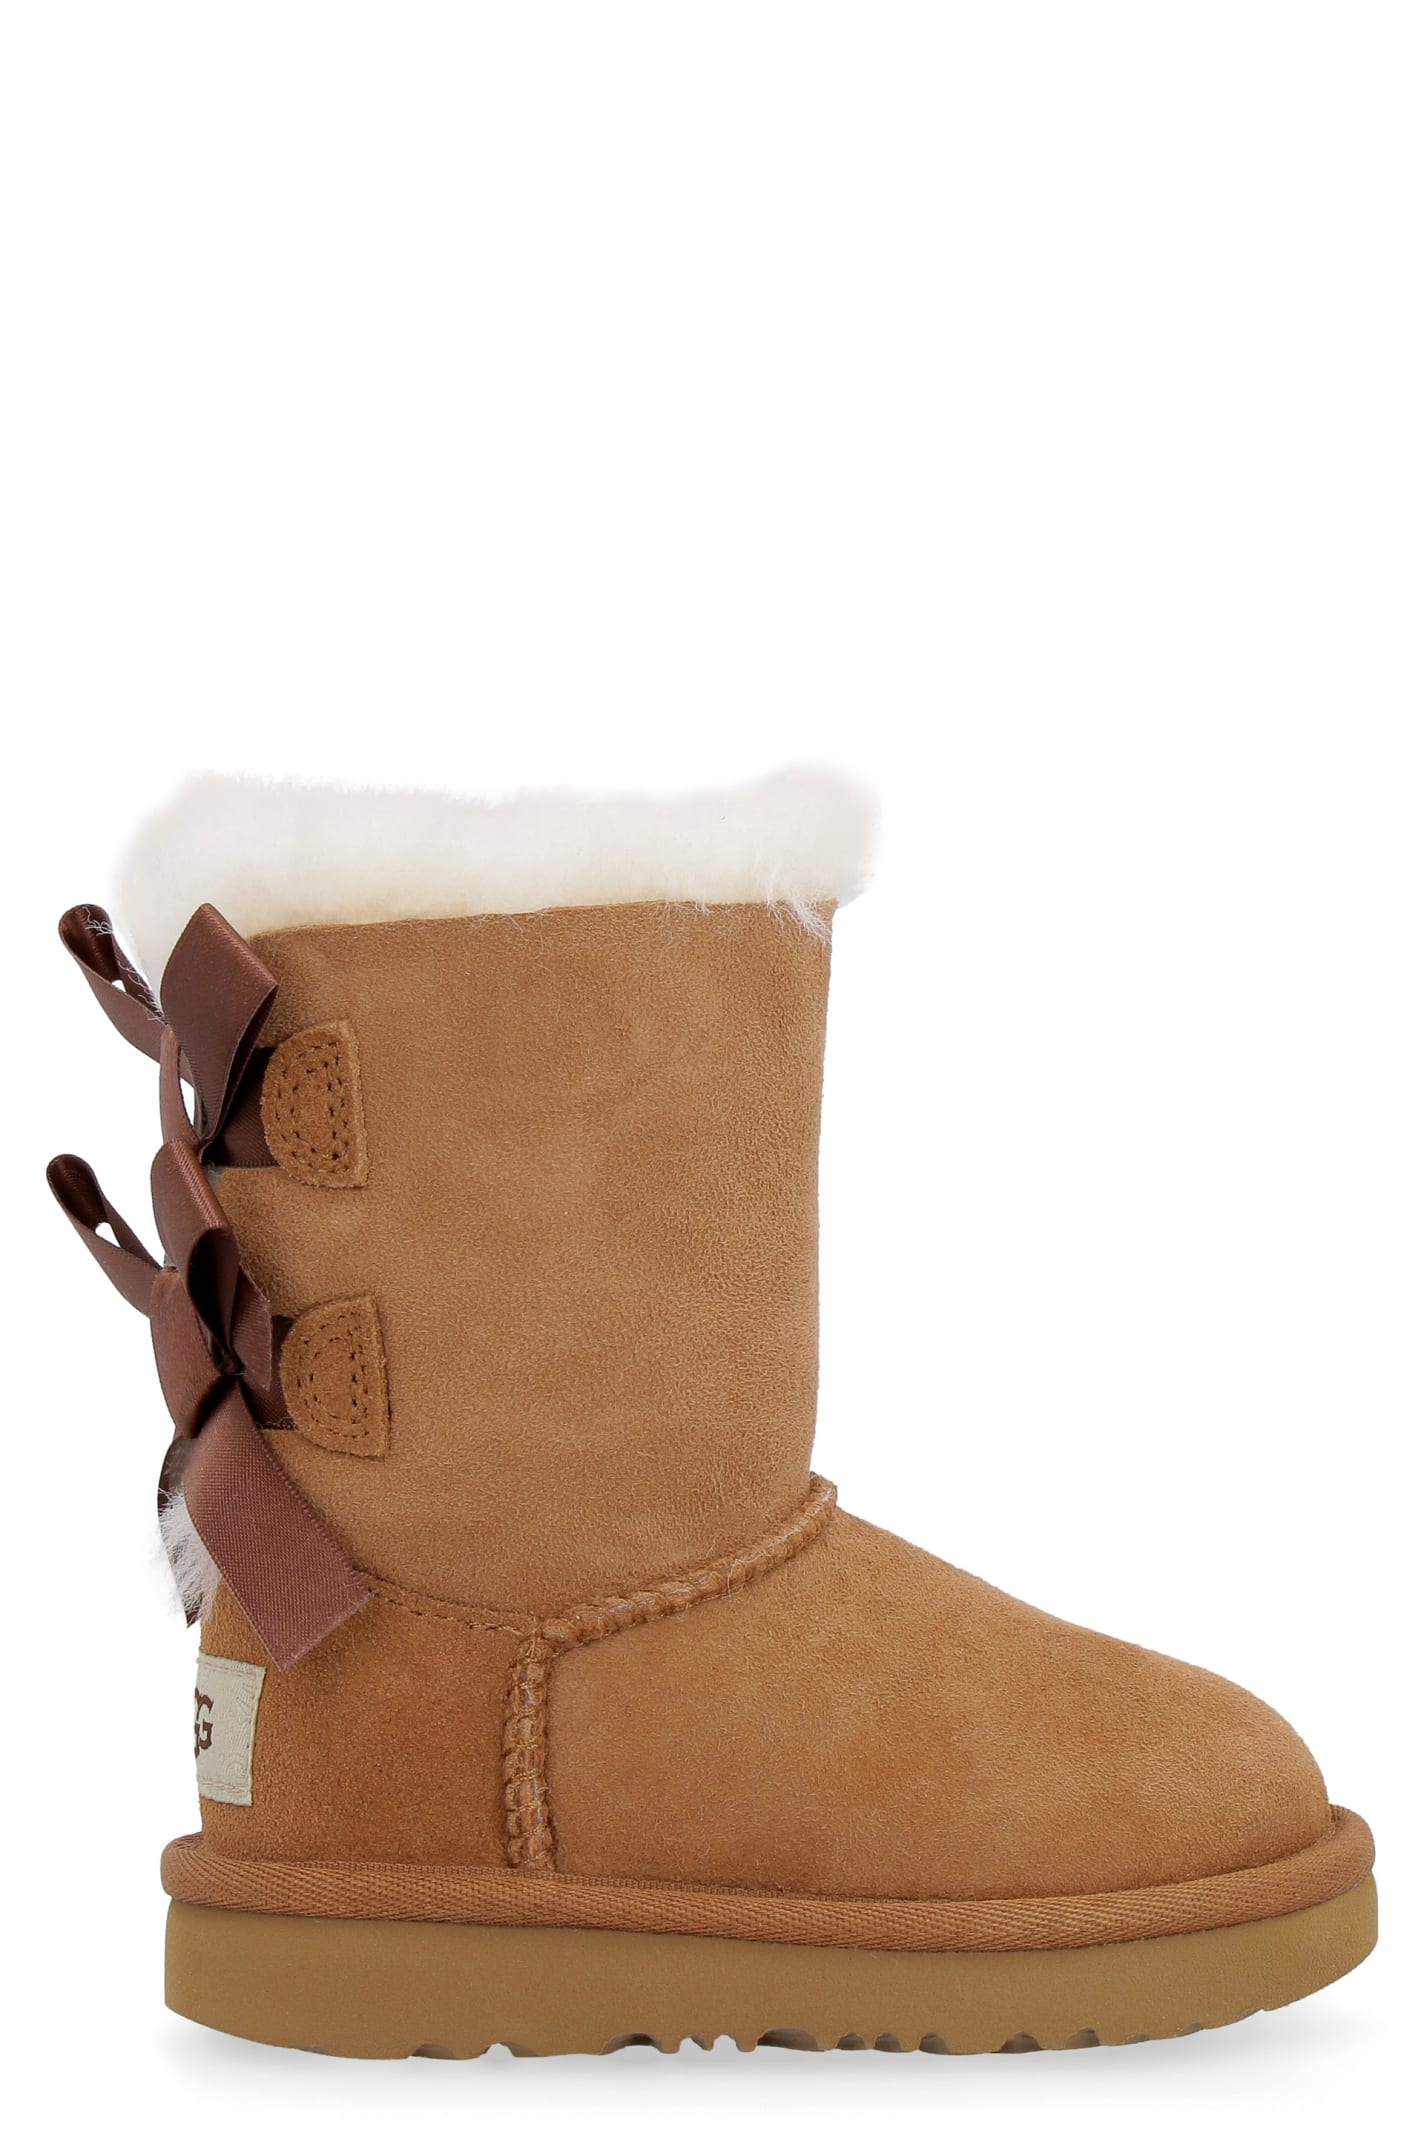 Buy UGG Bailey Bow Ii Boots online, shop UGG shoes with free shipping